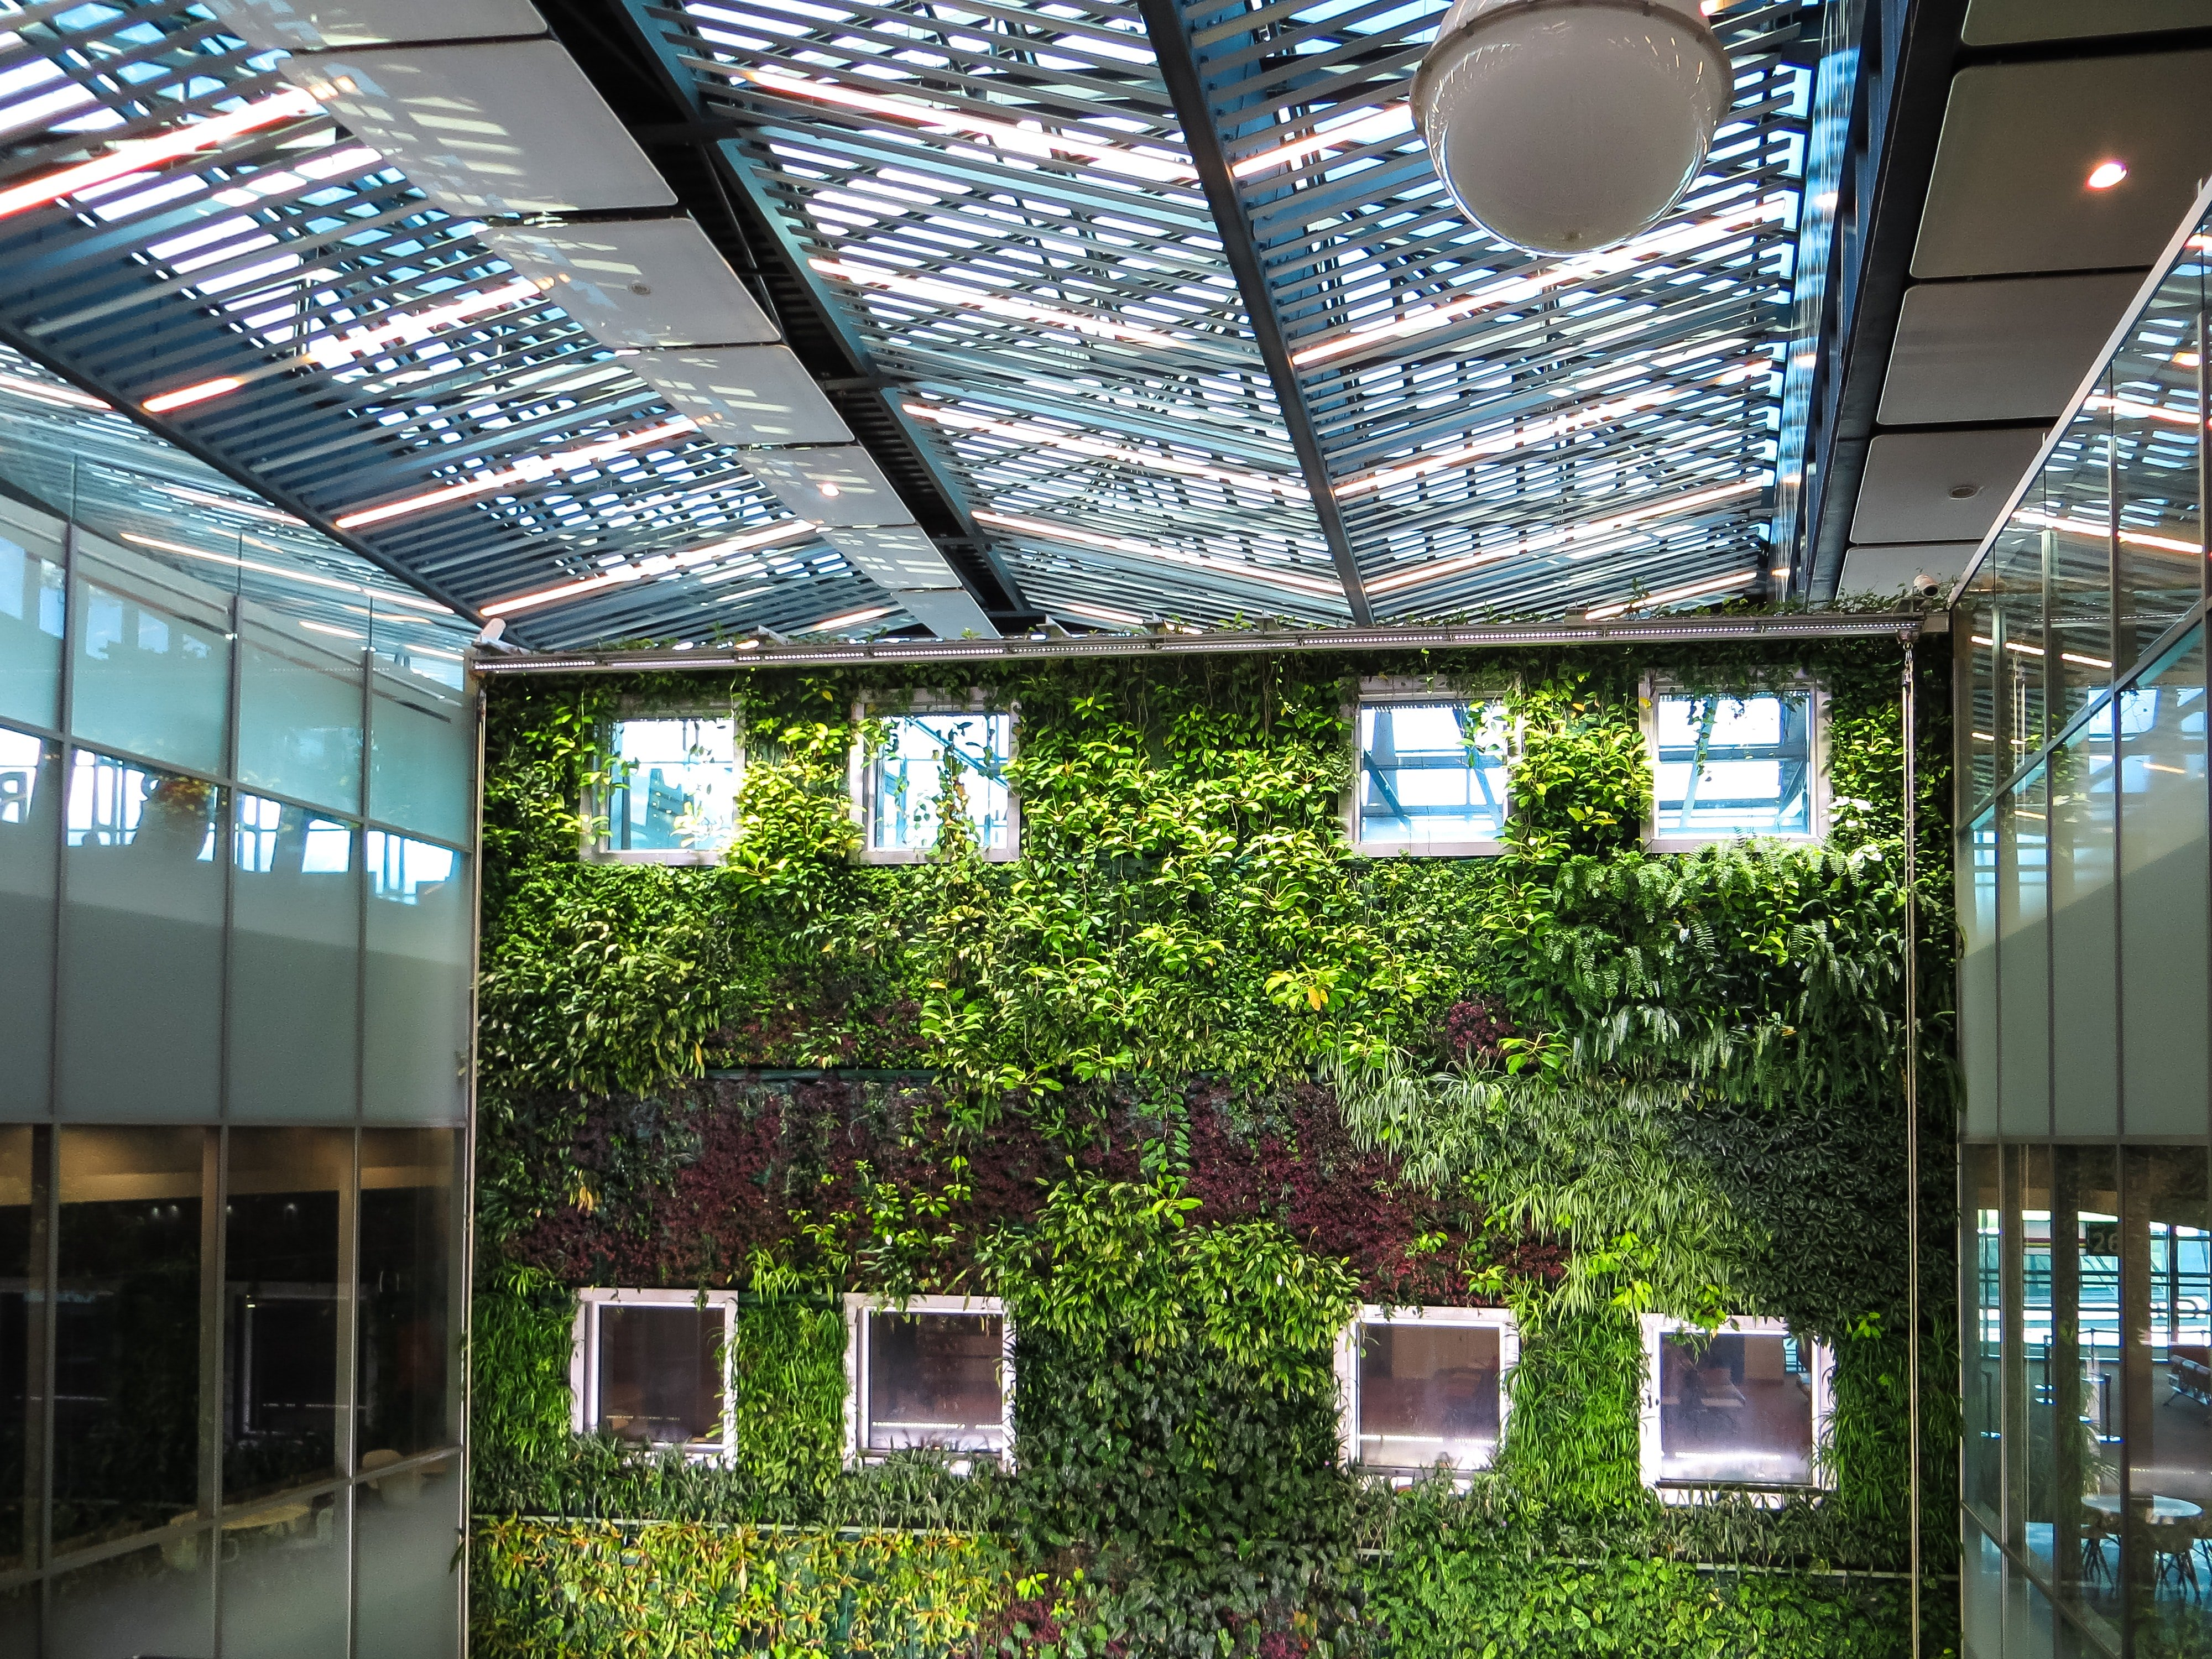 Office building with a live plant wall.